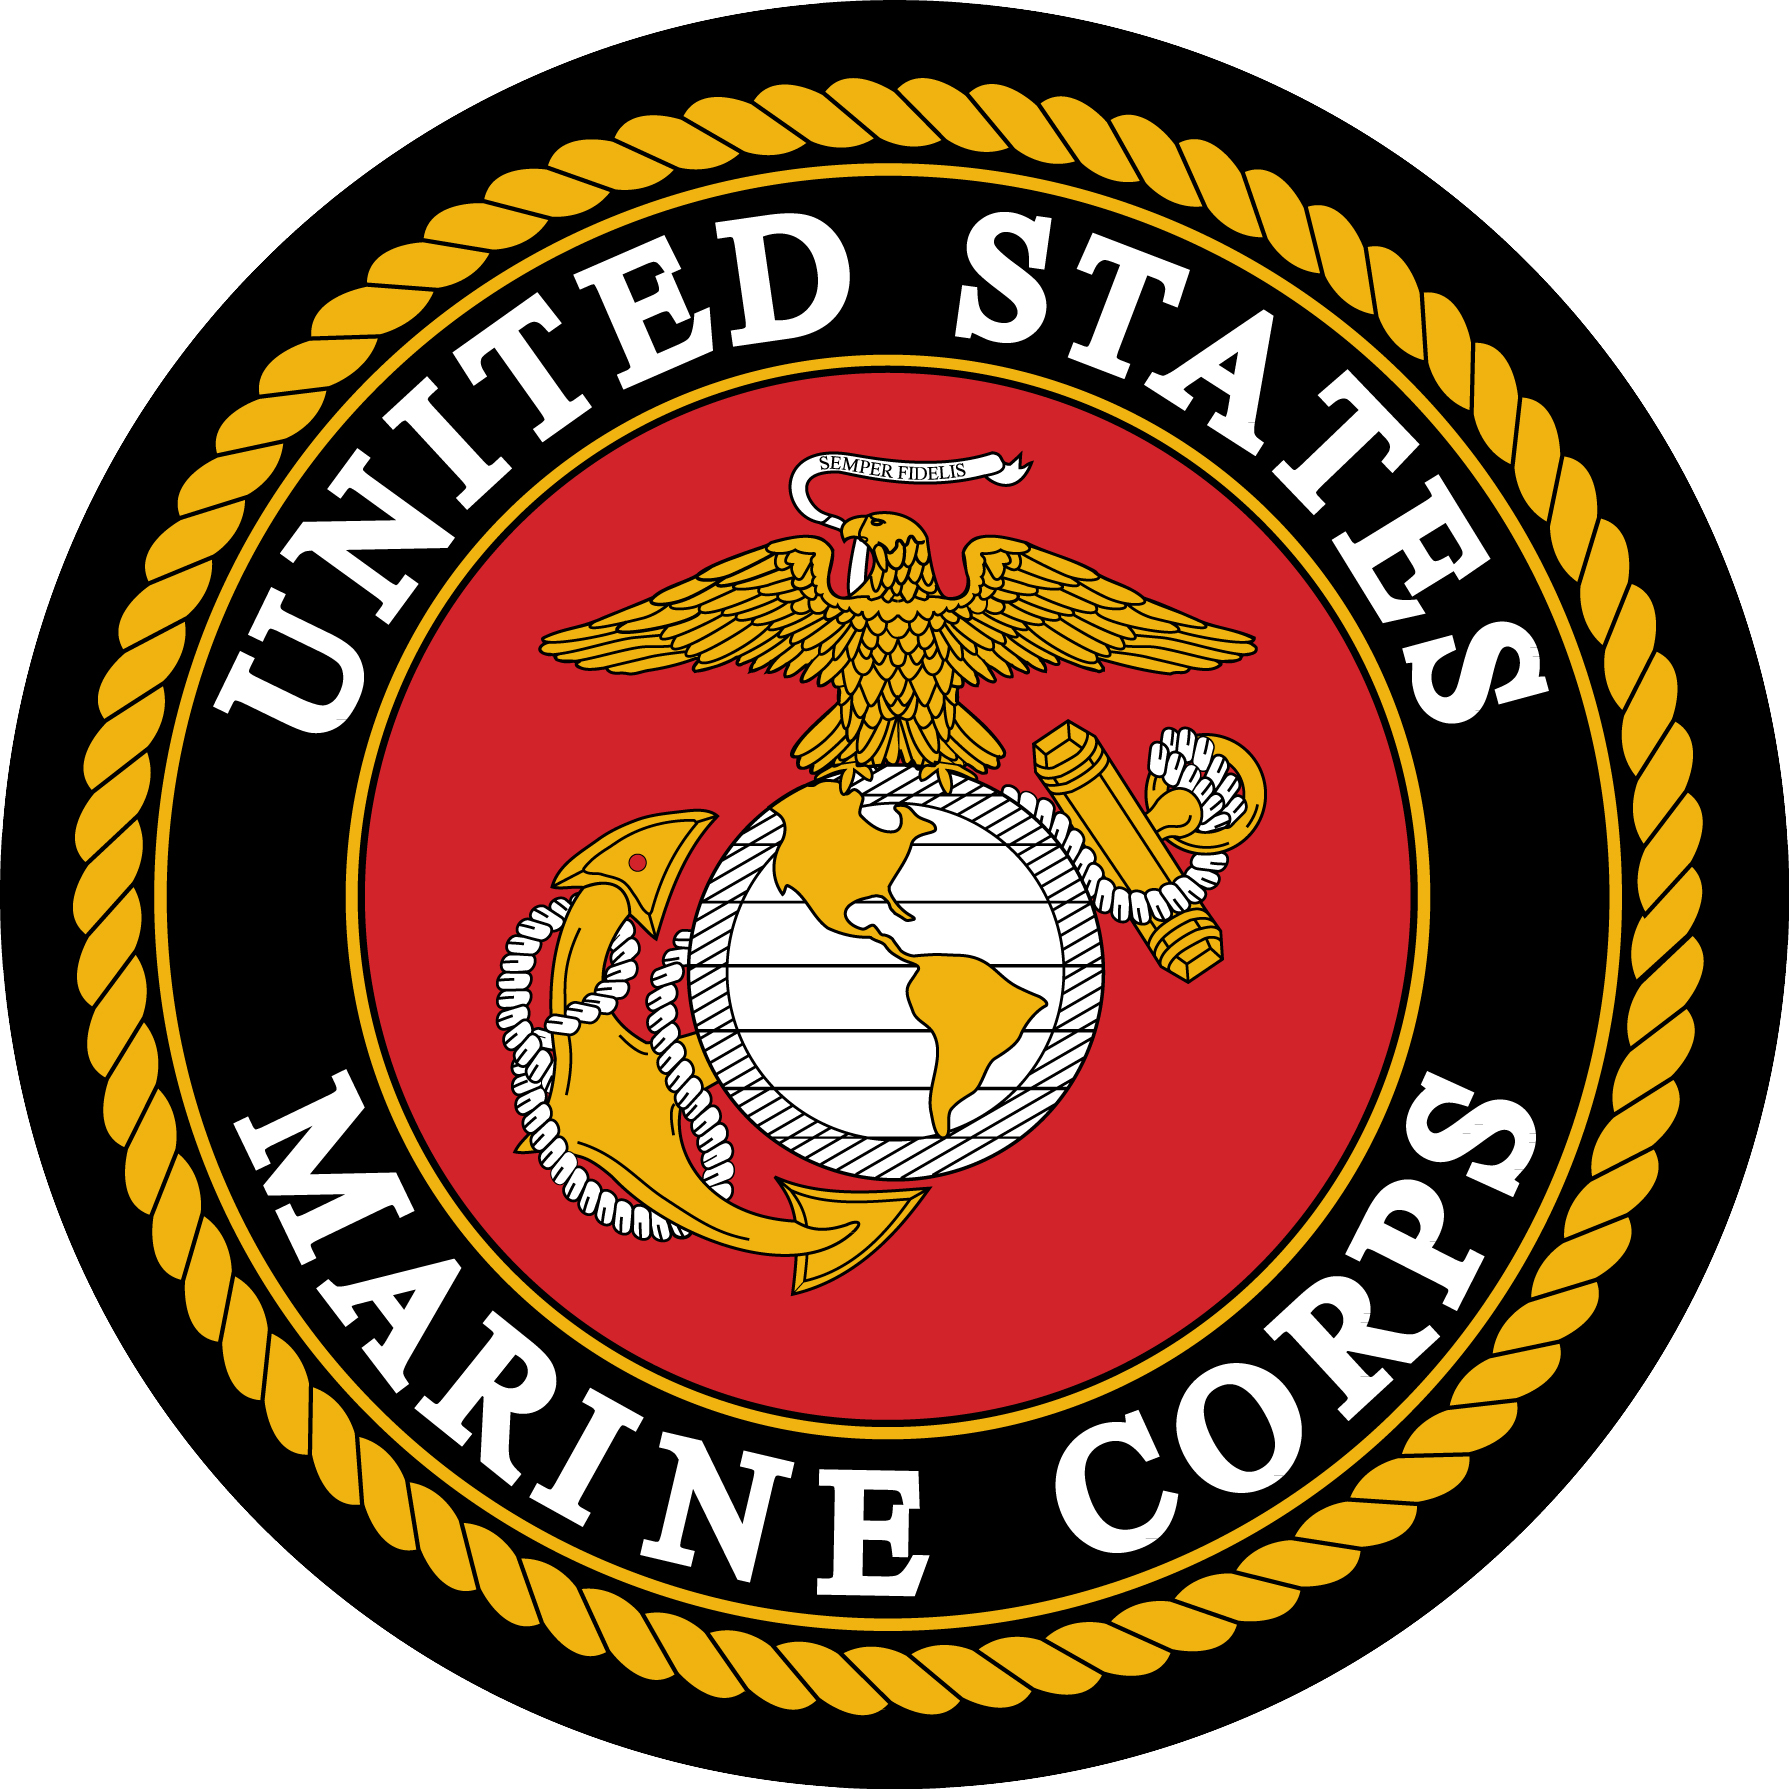 1789x1789 Collection Of Free Vector Logos Marine Corps. Download On Ubisafe